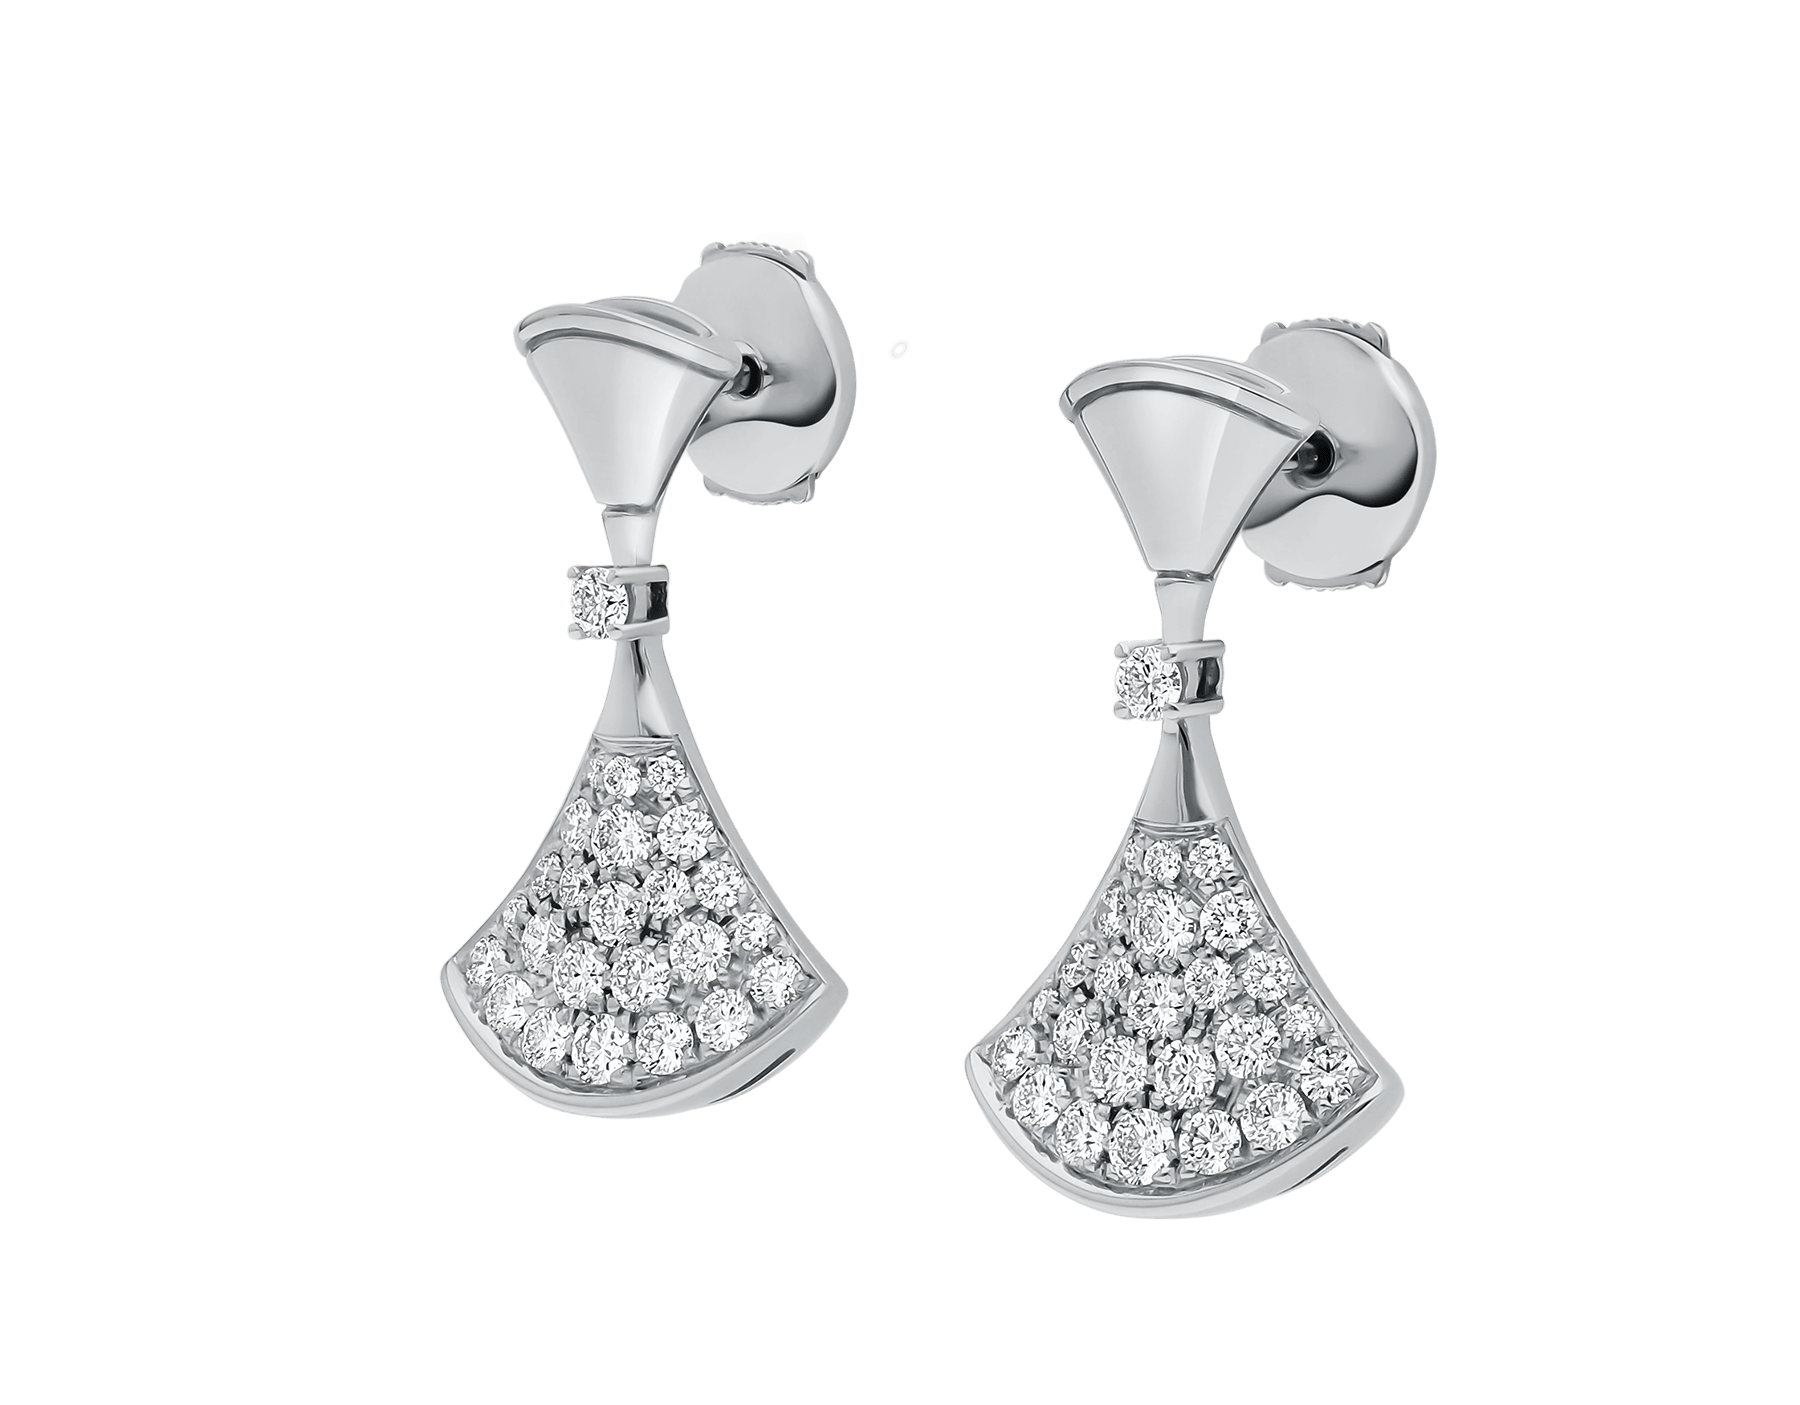 DIVAS' DREAM earrings in 18 kt white gold set with a diamond and pavé diamonds. 351100 image 3